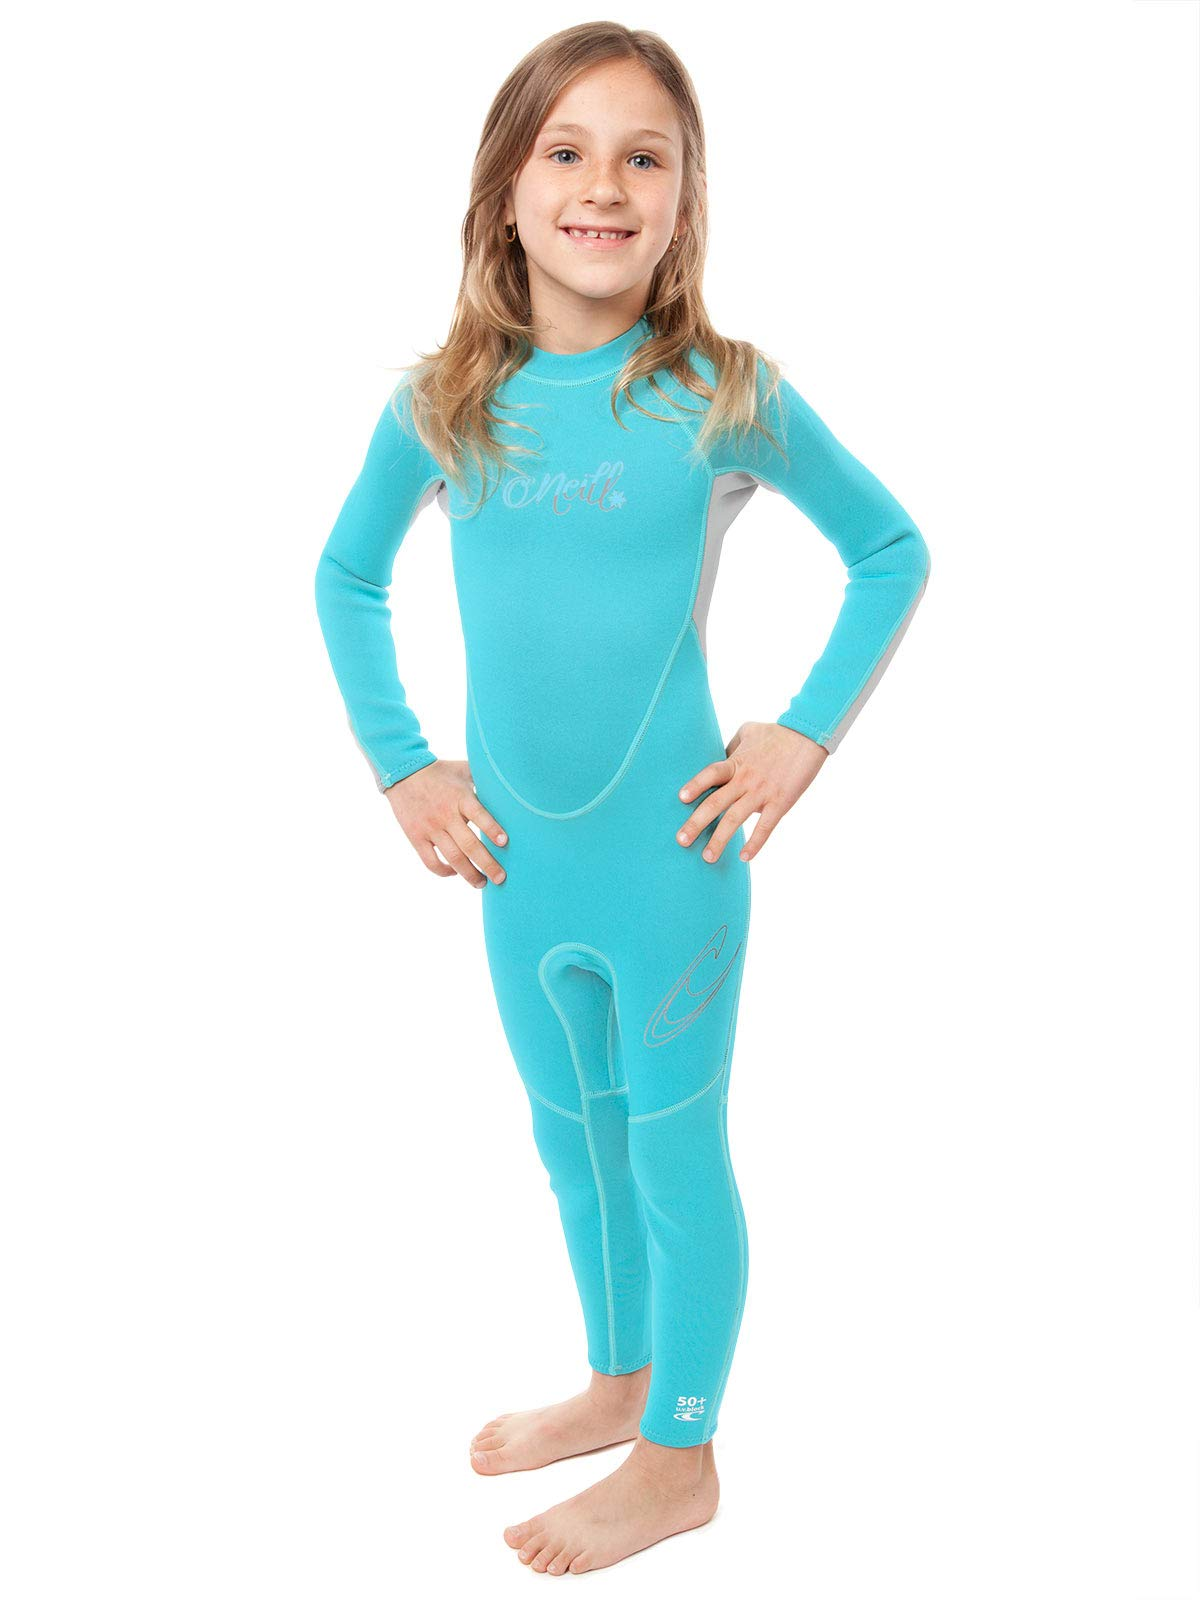 O'Neill Reactor Toddler Full Wetsuit 1 Light Aqua/Cool Grey (4629G) by O'Neill Wetsuits